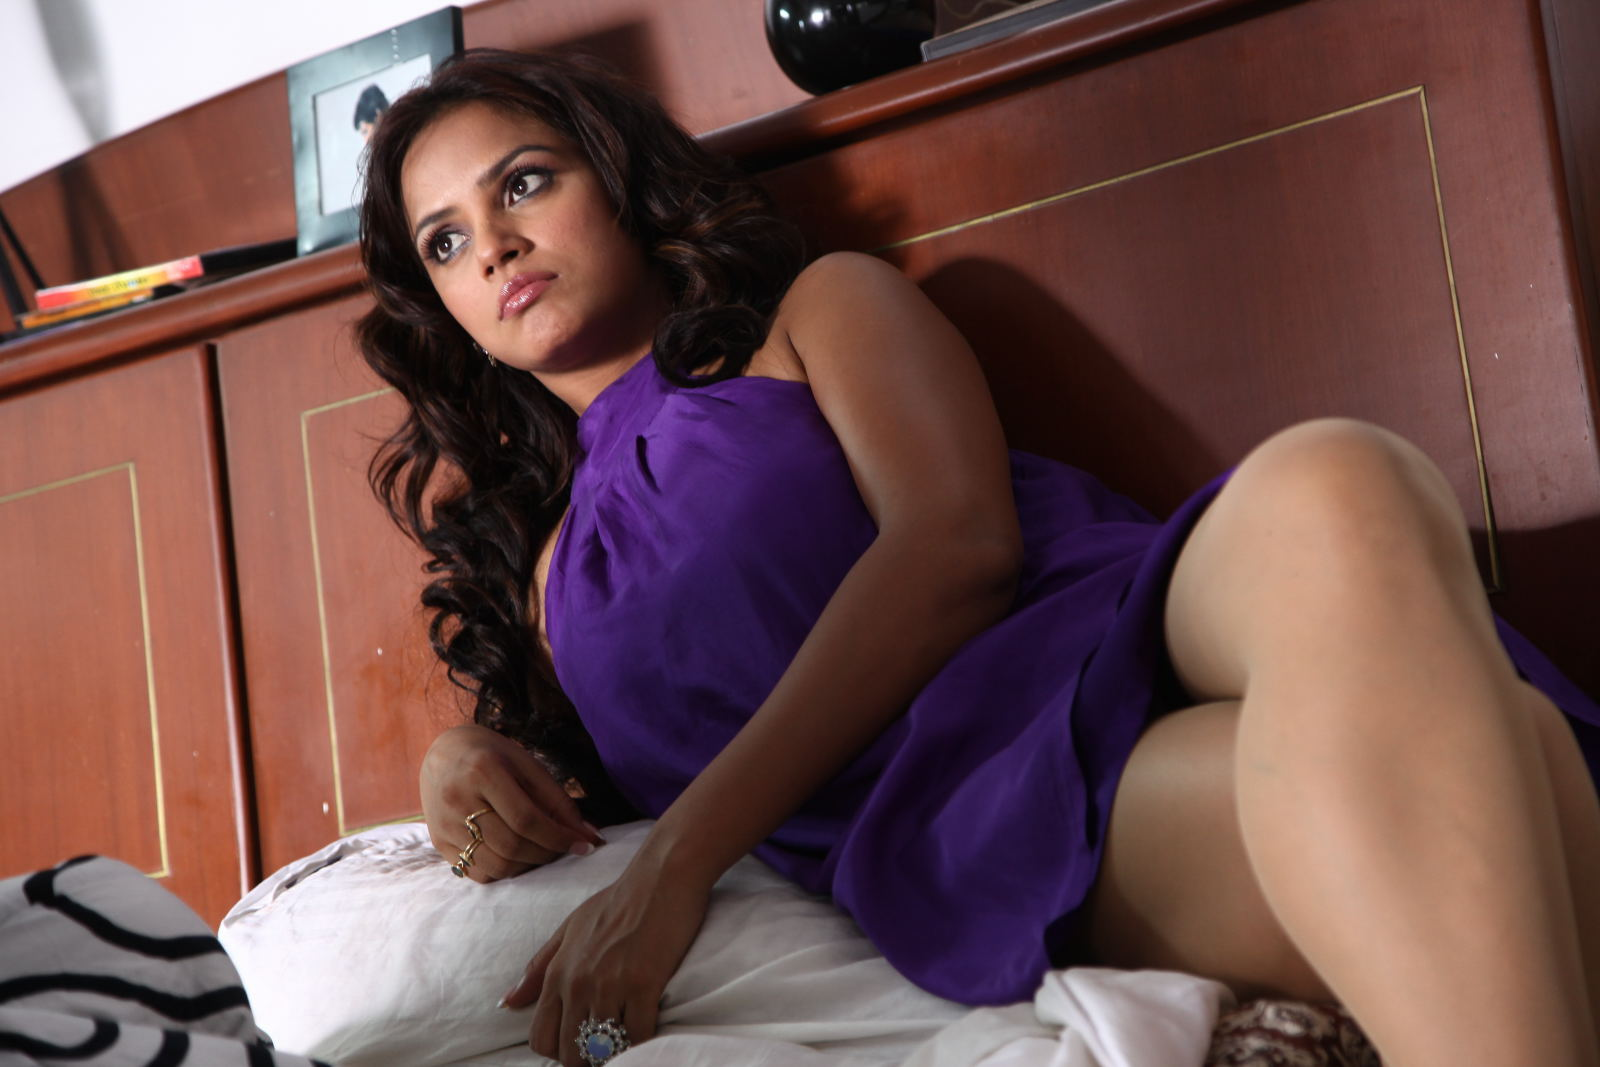 Neetu Chandra purple short dress sexy thighs - Neetu Chandra STRIKING HOT PICS